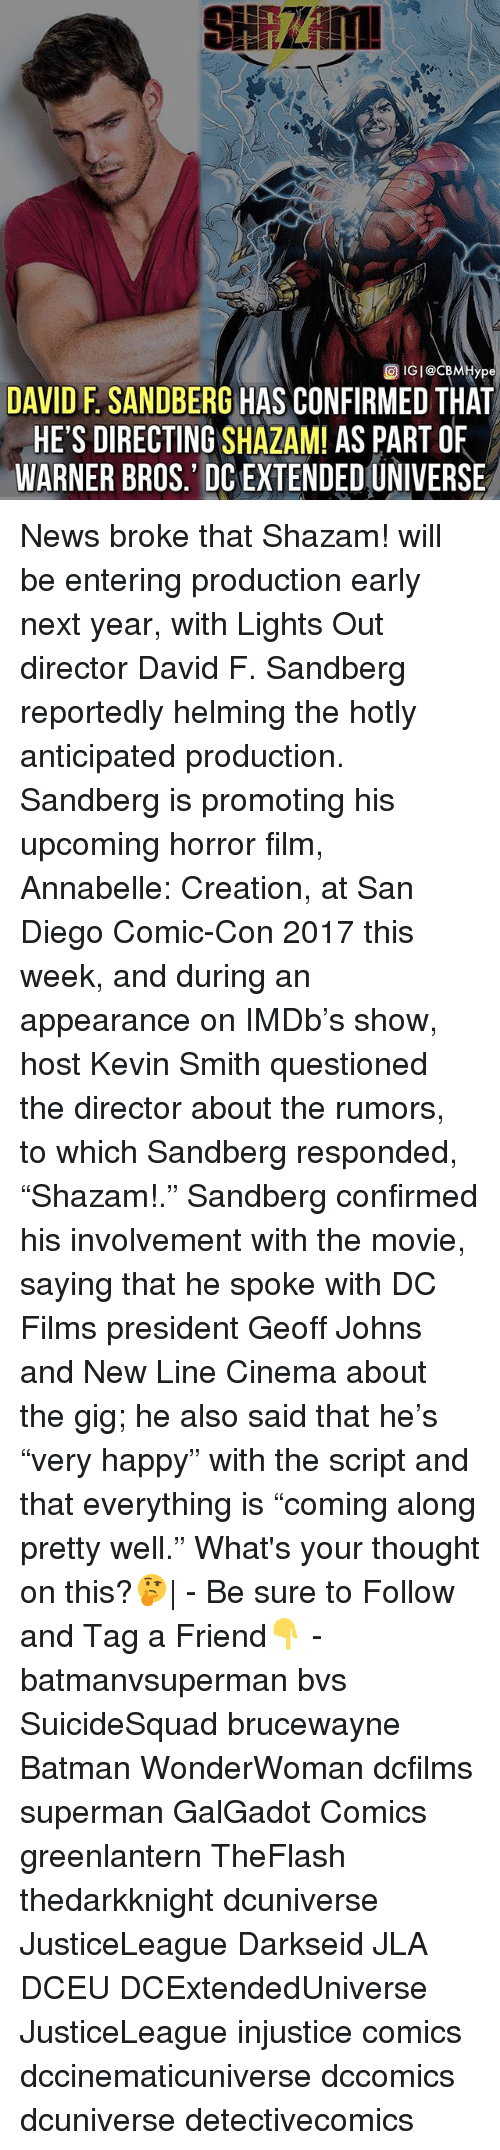 """creationism: ype  DAVID F. SANDBERG HAS CONFIRMED THAT  HE'S DIRECTING SHAZAM! AS PART OF  WARNER BROS.' DC EXTENDED UNIVERSE News broke that Shazam! will be entering production early next year, with Lights Out director David F. Sandberg reportedly helming the hotly anticipated production. Sandberg is promoting his upcoming horror film, Annabelle: Creation, at San Diego Comic-Con 2017 this week, and during an appearance on IMDb's show, host Kevin Smith questioned the director about the rumors, to which Sandberg responded, """"Shazam!."""" Sandberg confirmed his involvement with the movie, saying that he spoke with DC Films president Geoff Johns and New Line Cinema about the gig; he also said that he's """"very happy"""" with the script and that everything is """"coming along pretty well."""" What's your thought on this?🤔  - Be sure to Follow and Tag a Friend👇 - batmanvsuperman bvs SuicideSquad brucewayne Batman WonderWoman dcfilms superman GalGadot Comics greenlantern TheFlash thedarkknight dcuniverse JusticeLeague Darkseid JLA DCEU DCExtendedUniverse JusticeLeague injustice comics dccinematicuniverse dccomics dcuniverse detectivecomics"""